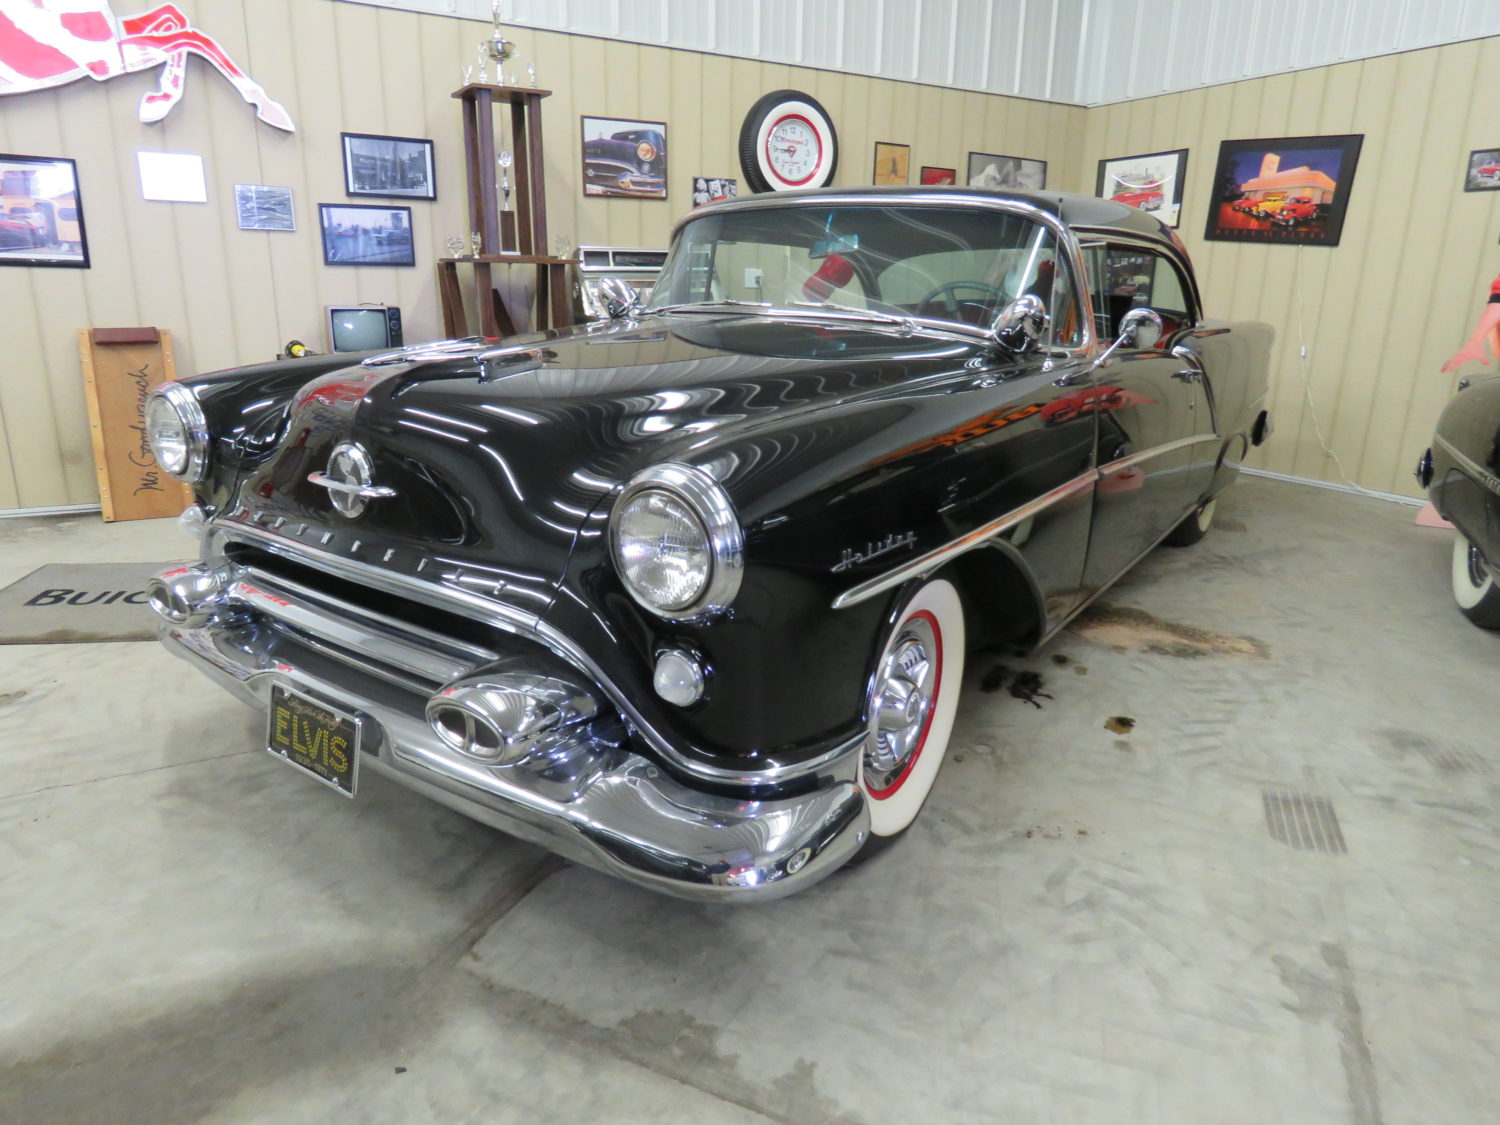 FABULOUS COLLECTOR CARS, MEMORABILIA, & MORE AT AUCTION-JERRY JOHNSON ESTATE! - image 9